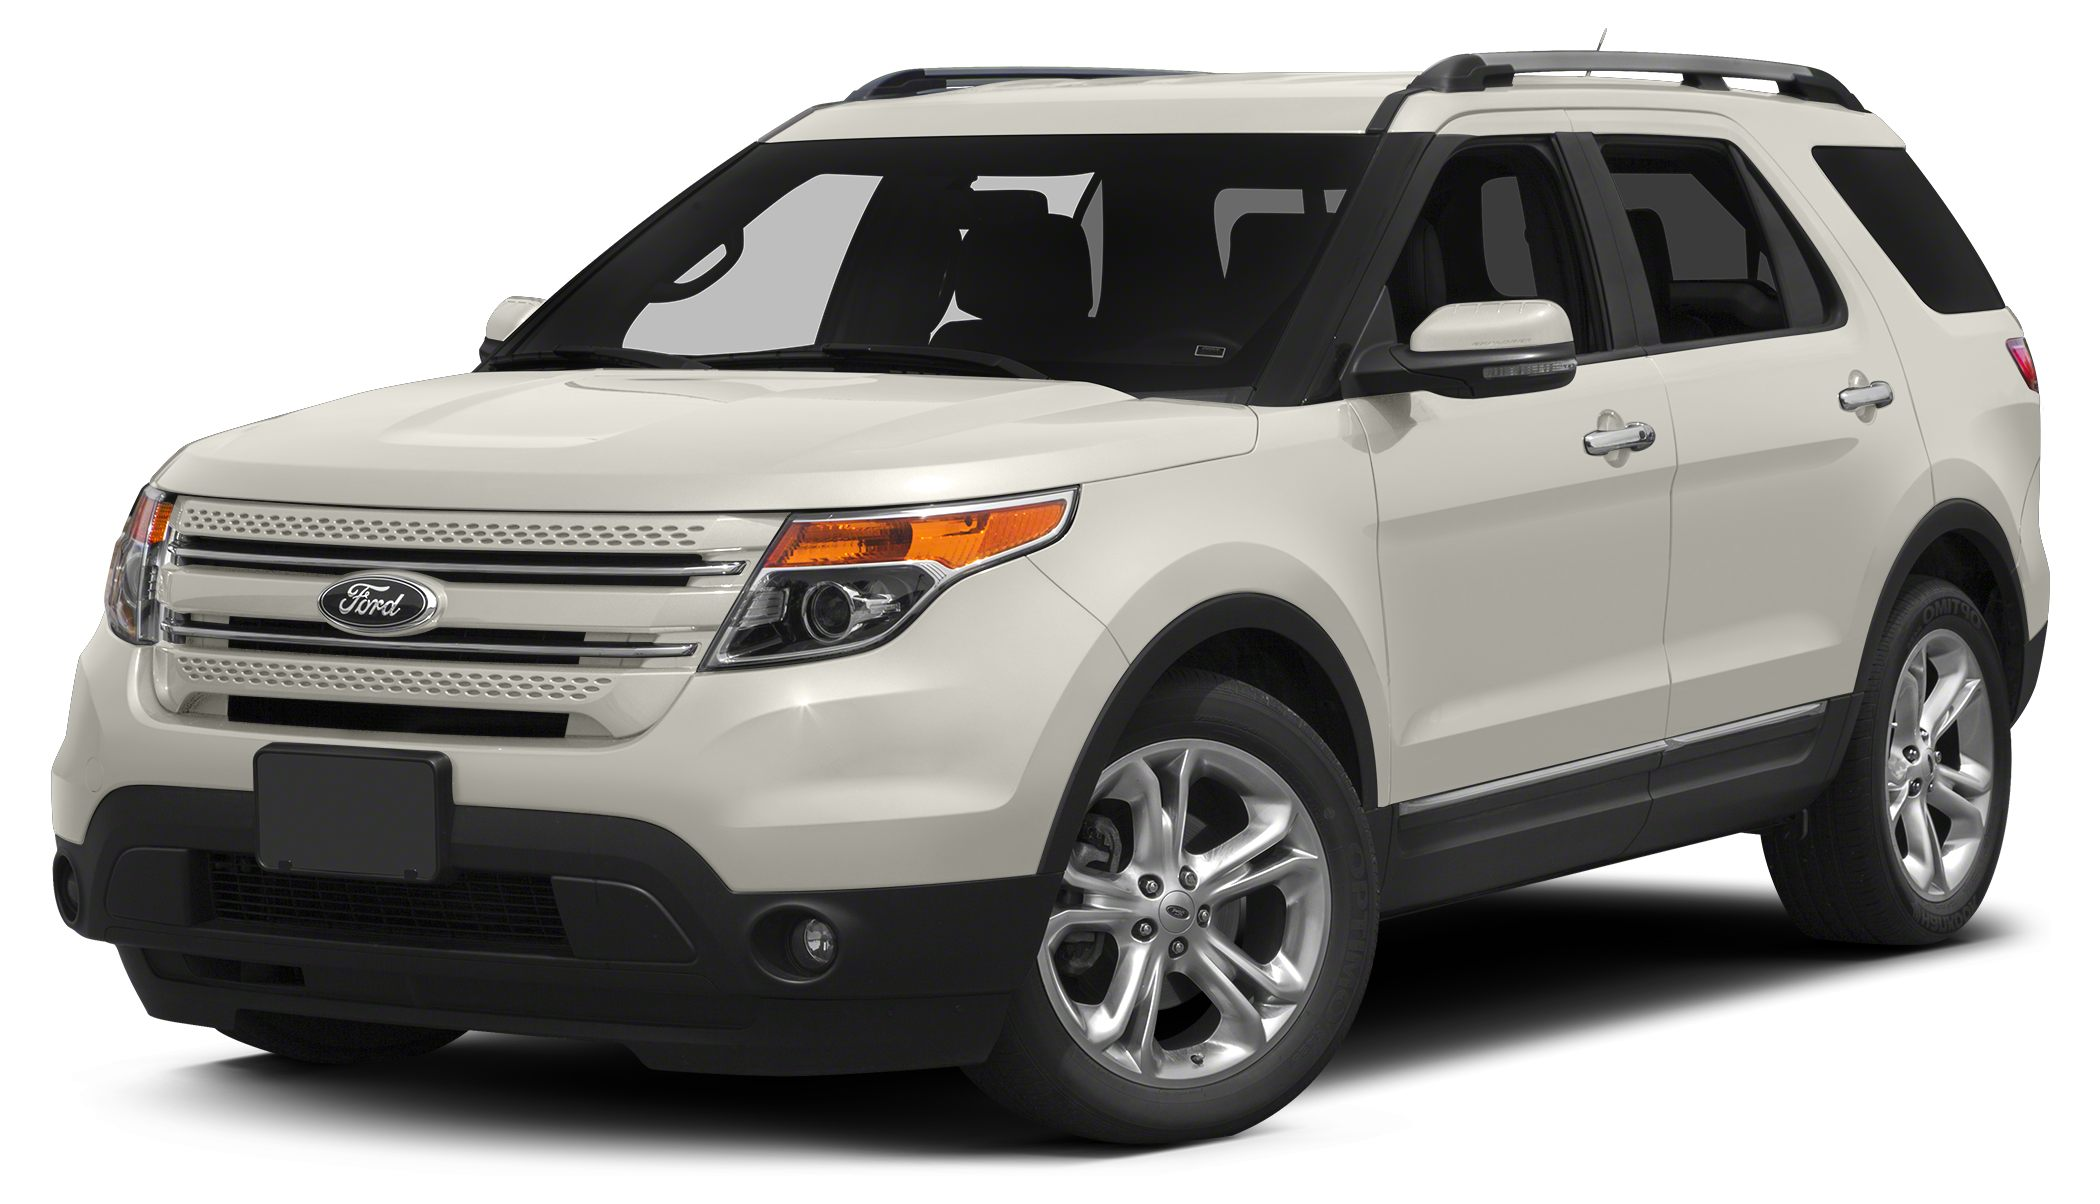 2013 Ford Explorer Limited Dealer Certified Spotless LOW MILES - 25572 WAS 36449 DVD Heated